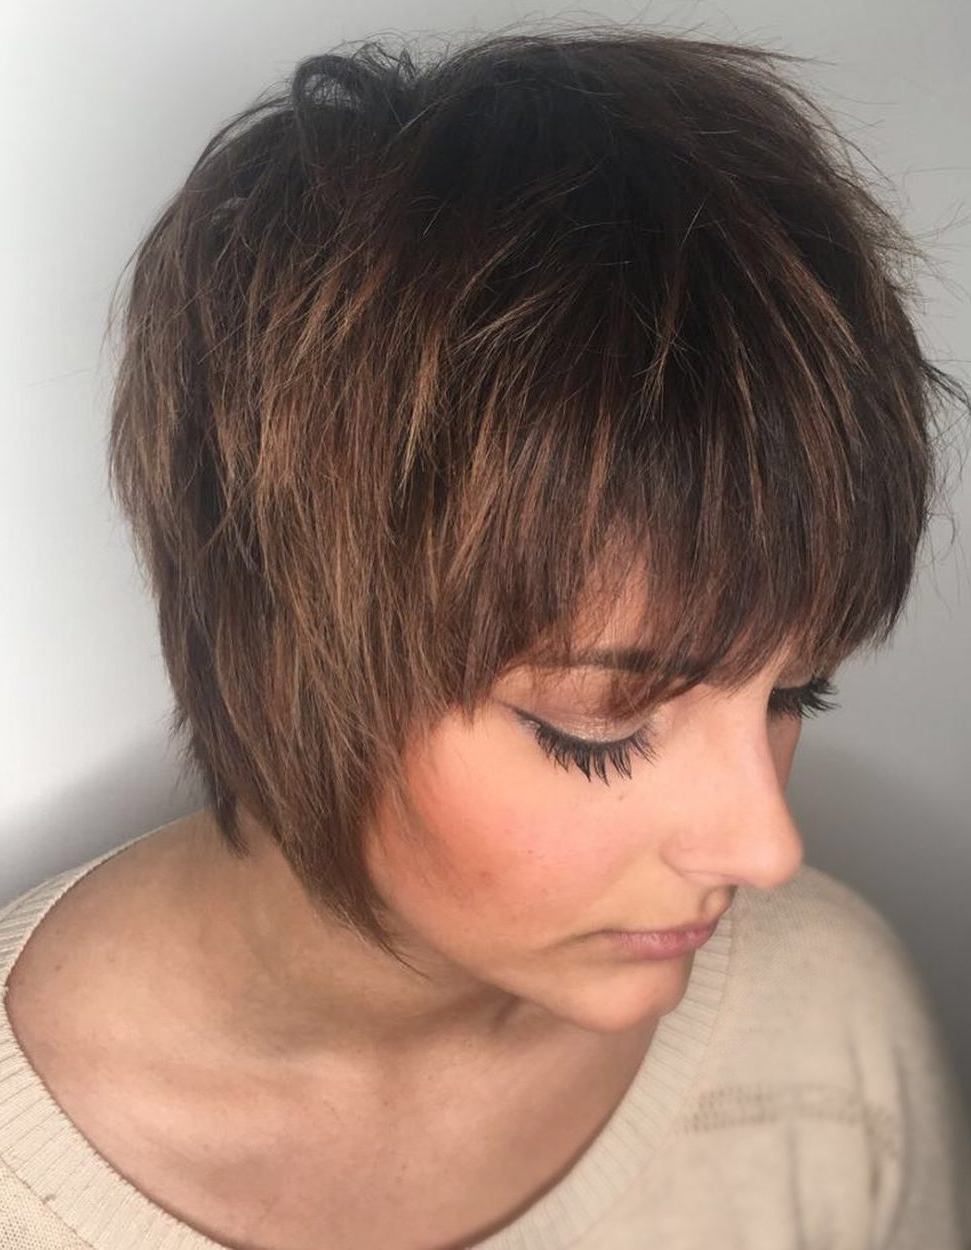 Current Elongated Razored Straight Shag Haircuts With Bangs Within Top 25 Short Shag Haircuts Right Now – Short Bob Cuts (View 9 of 20)